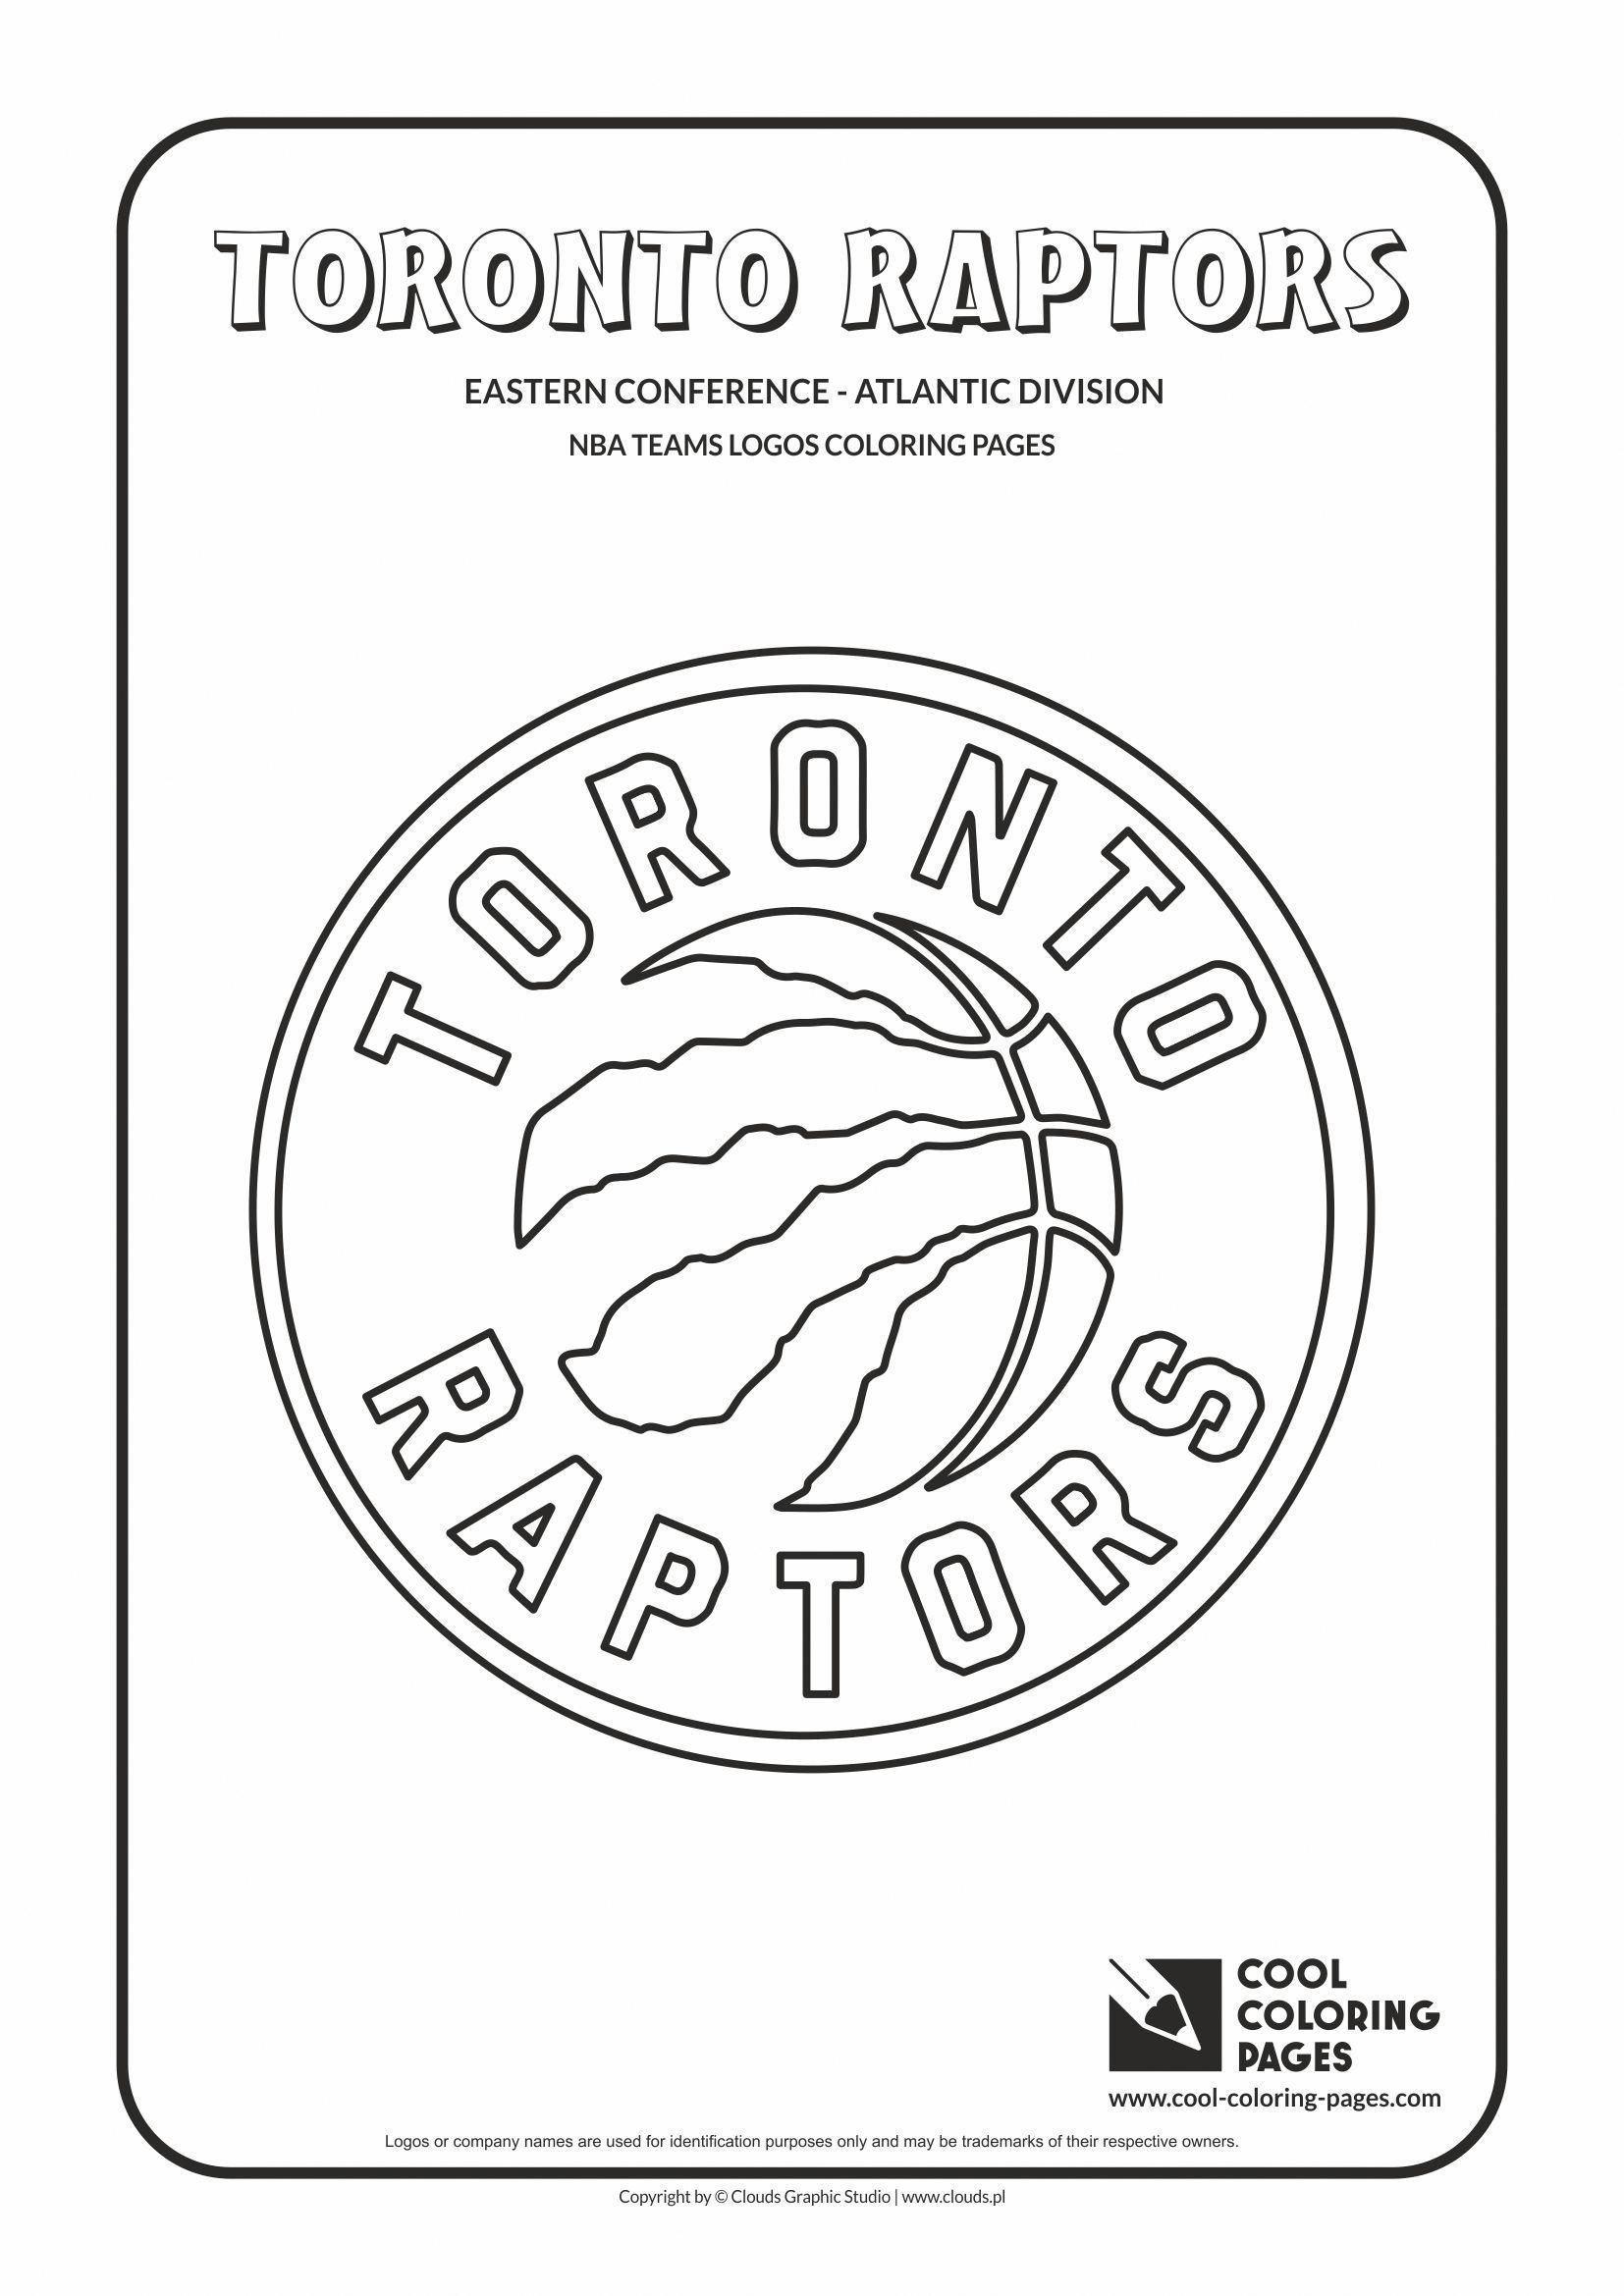 Toronto Raptors Nba Basketball Teams Logos Coloring Pages Cool